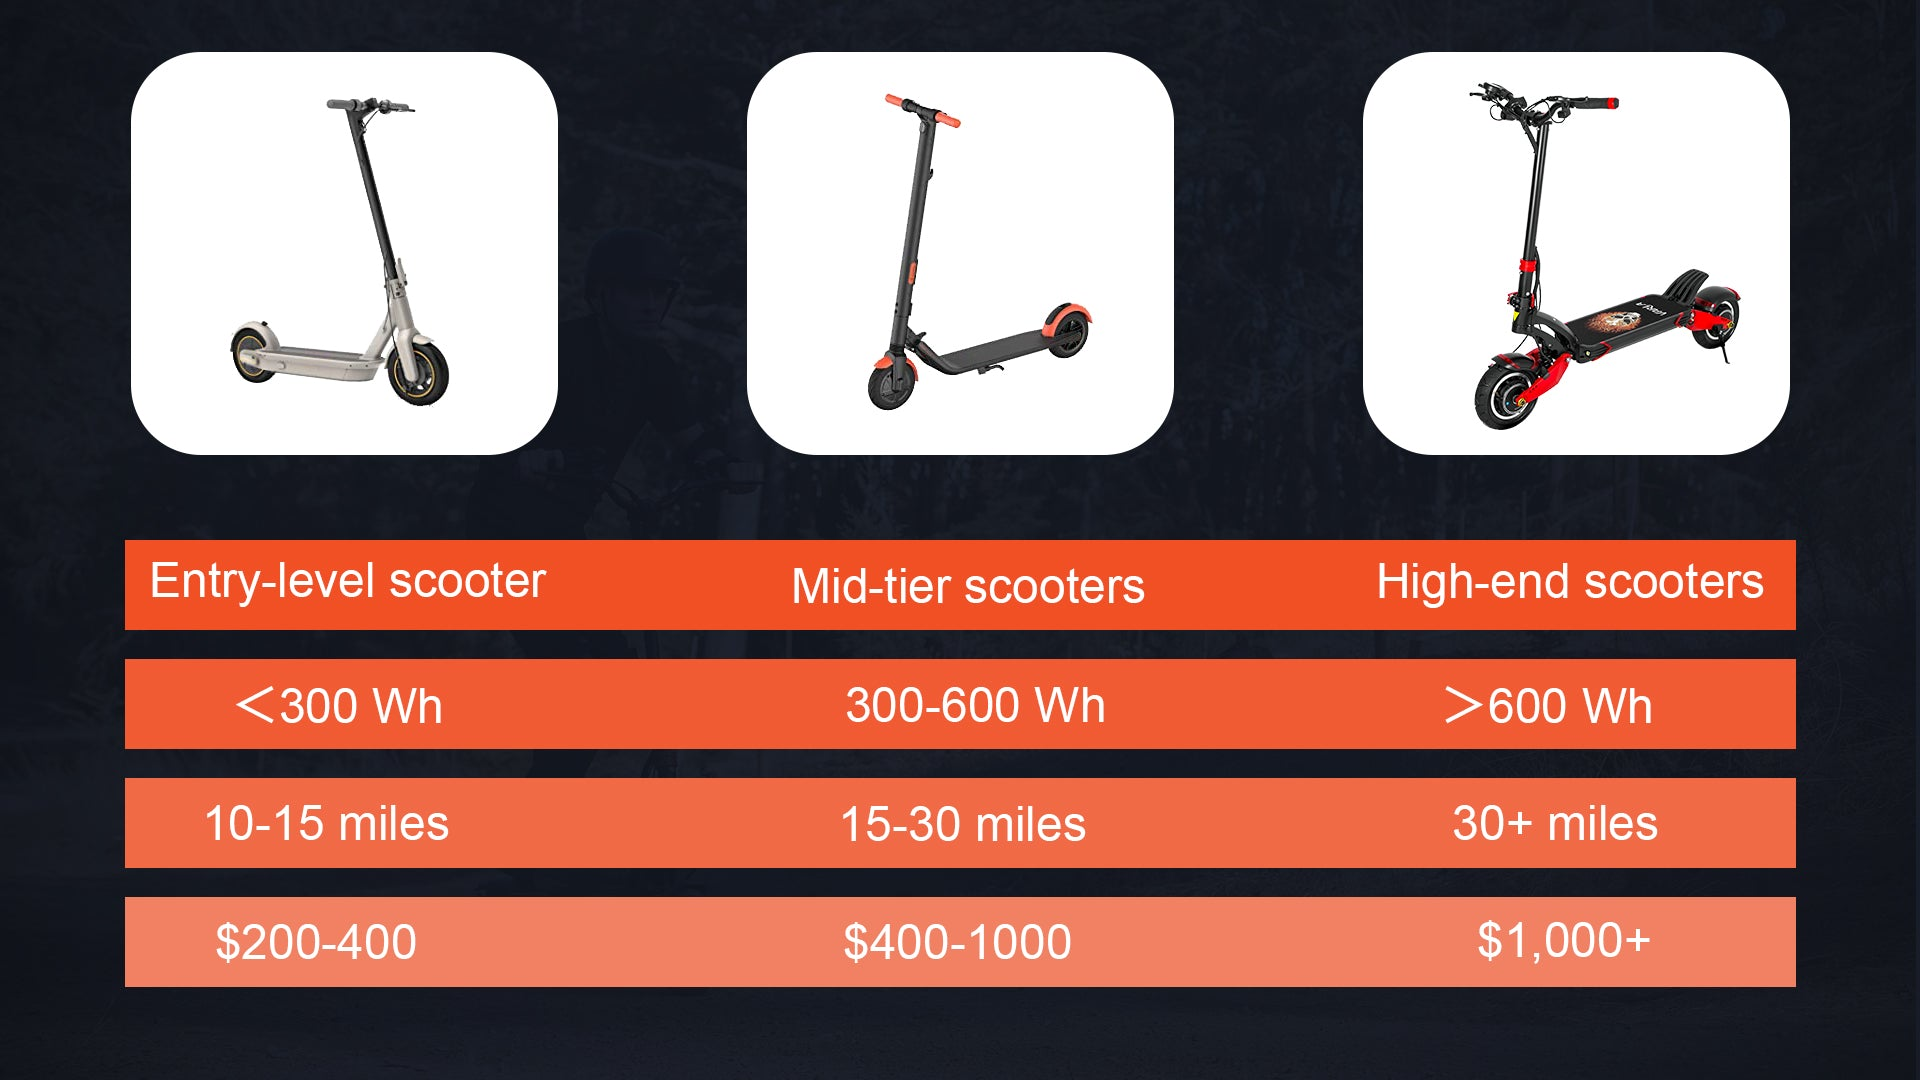 range-comparison-between-varla-scooter-and-other-escooters